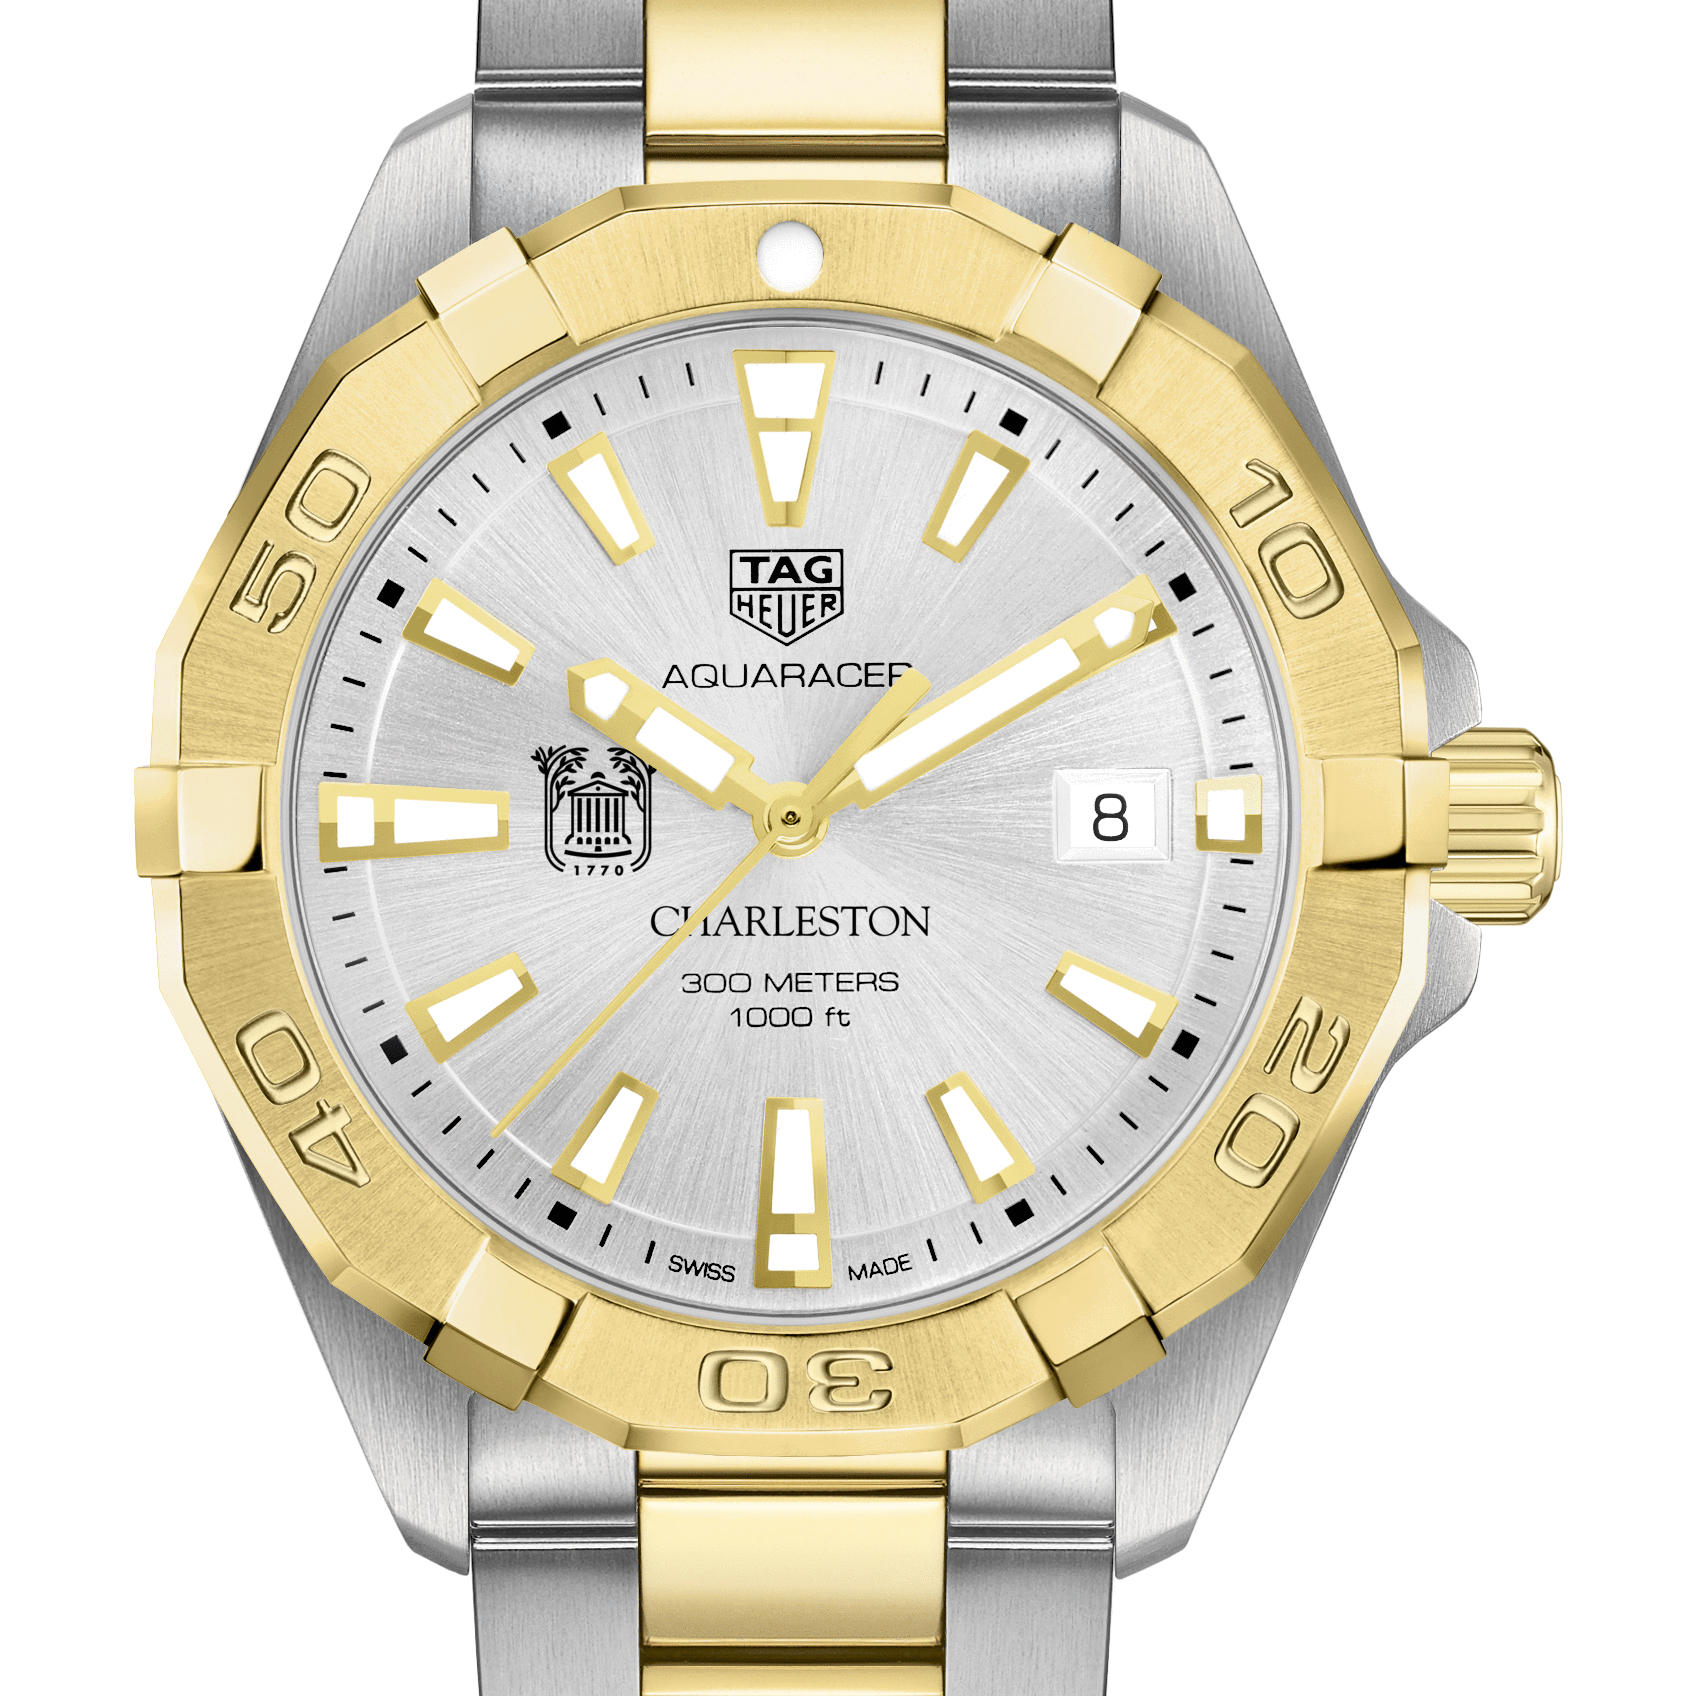 College of Charleston Men's TAG Heuer Two-Tone Aquaracer